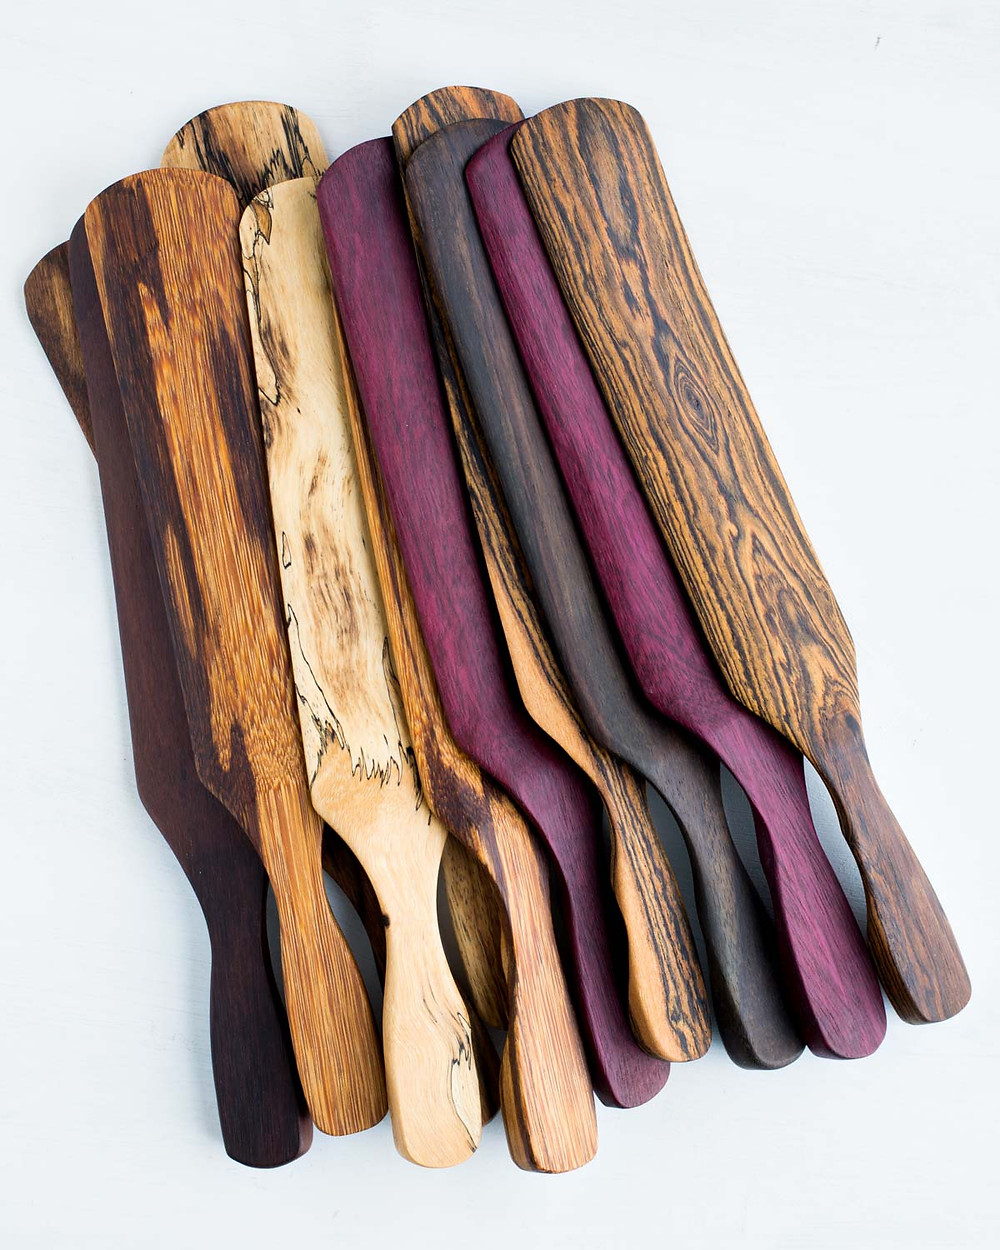 BoWood Company creates functional art for your kitchen